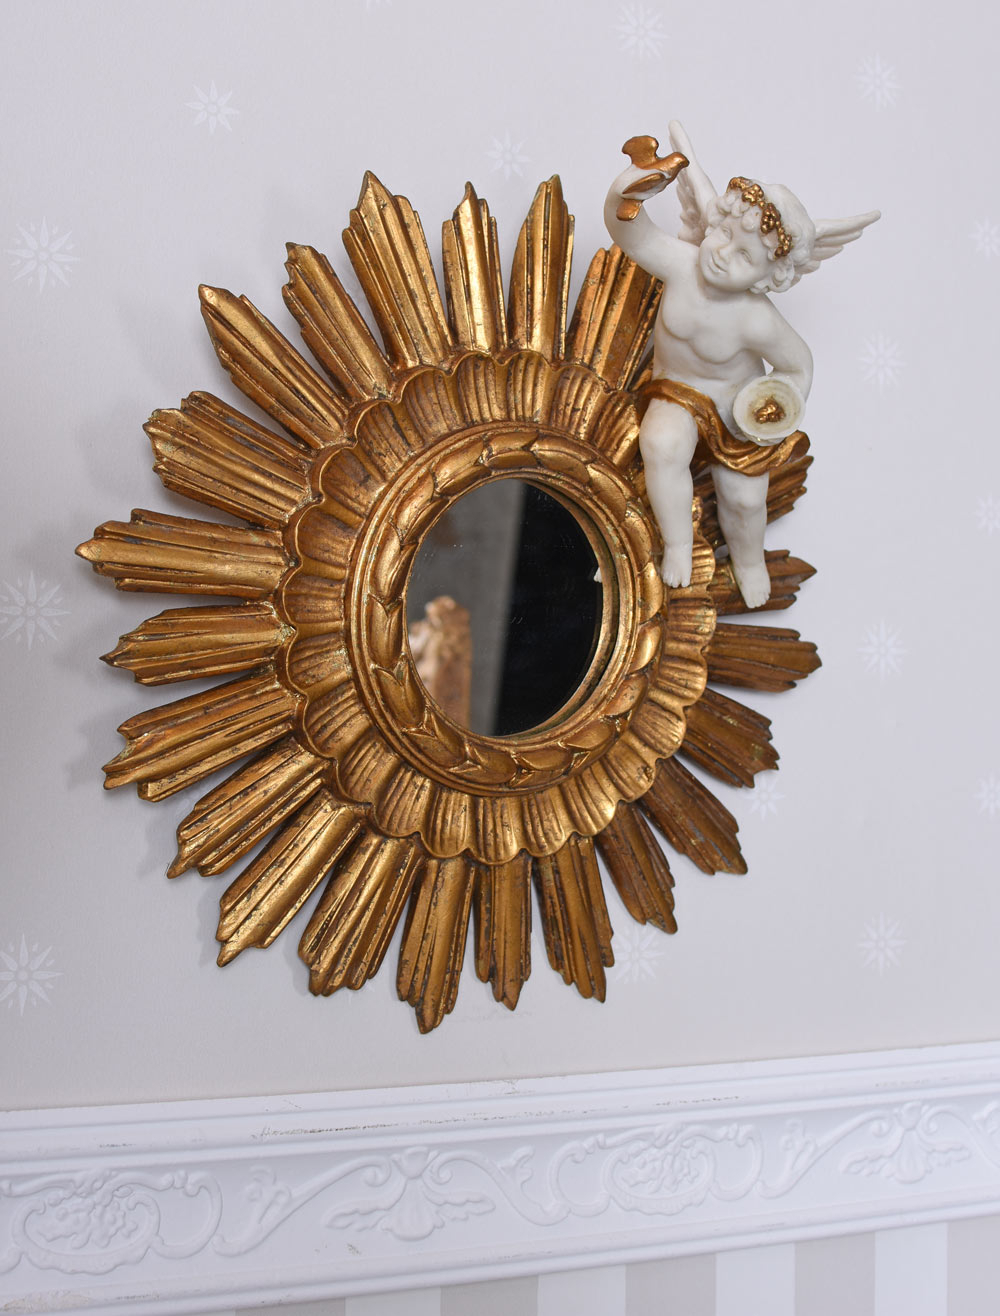 Details About Baroque Mirror Angel Figure Vintage Wall Mirror Gold Sun Mirror Cupid Sculpture Inside Bem Decorative Wall Mirrors (Gallery 10 of 30)